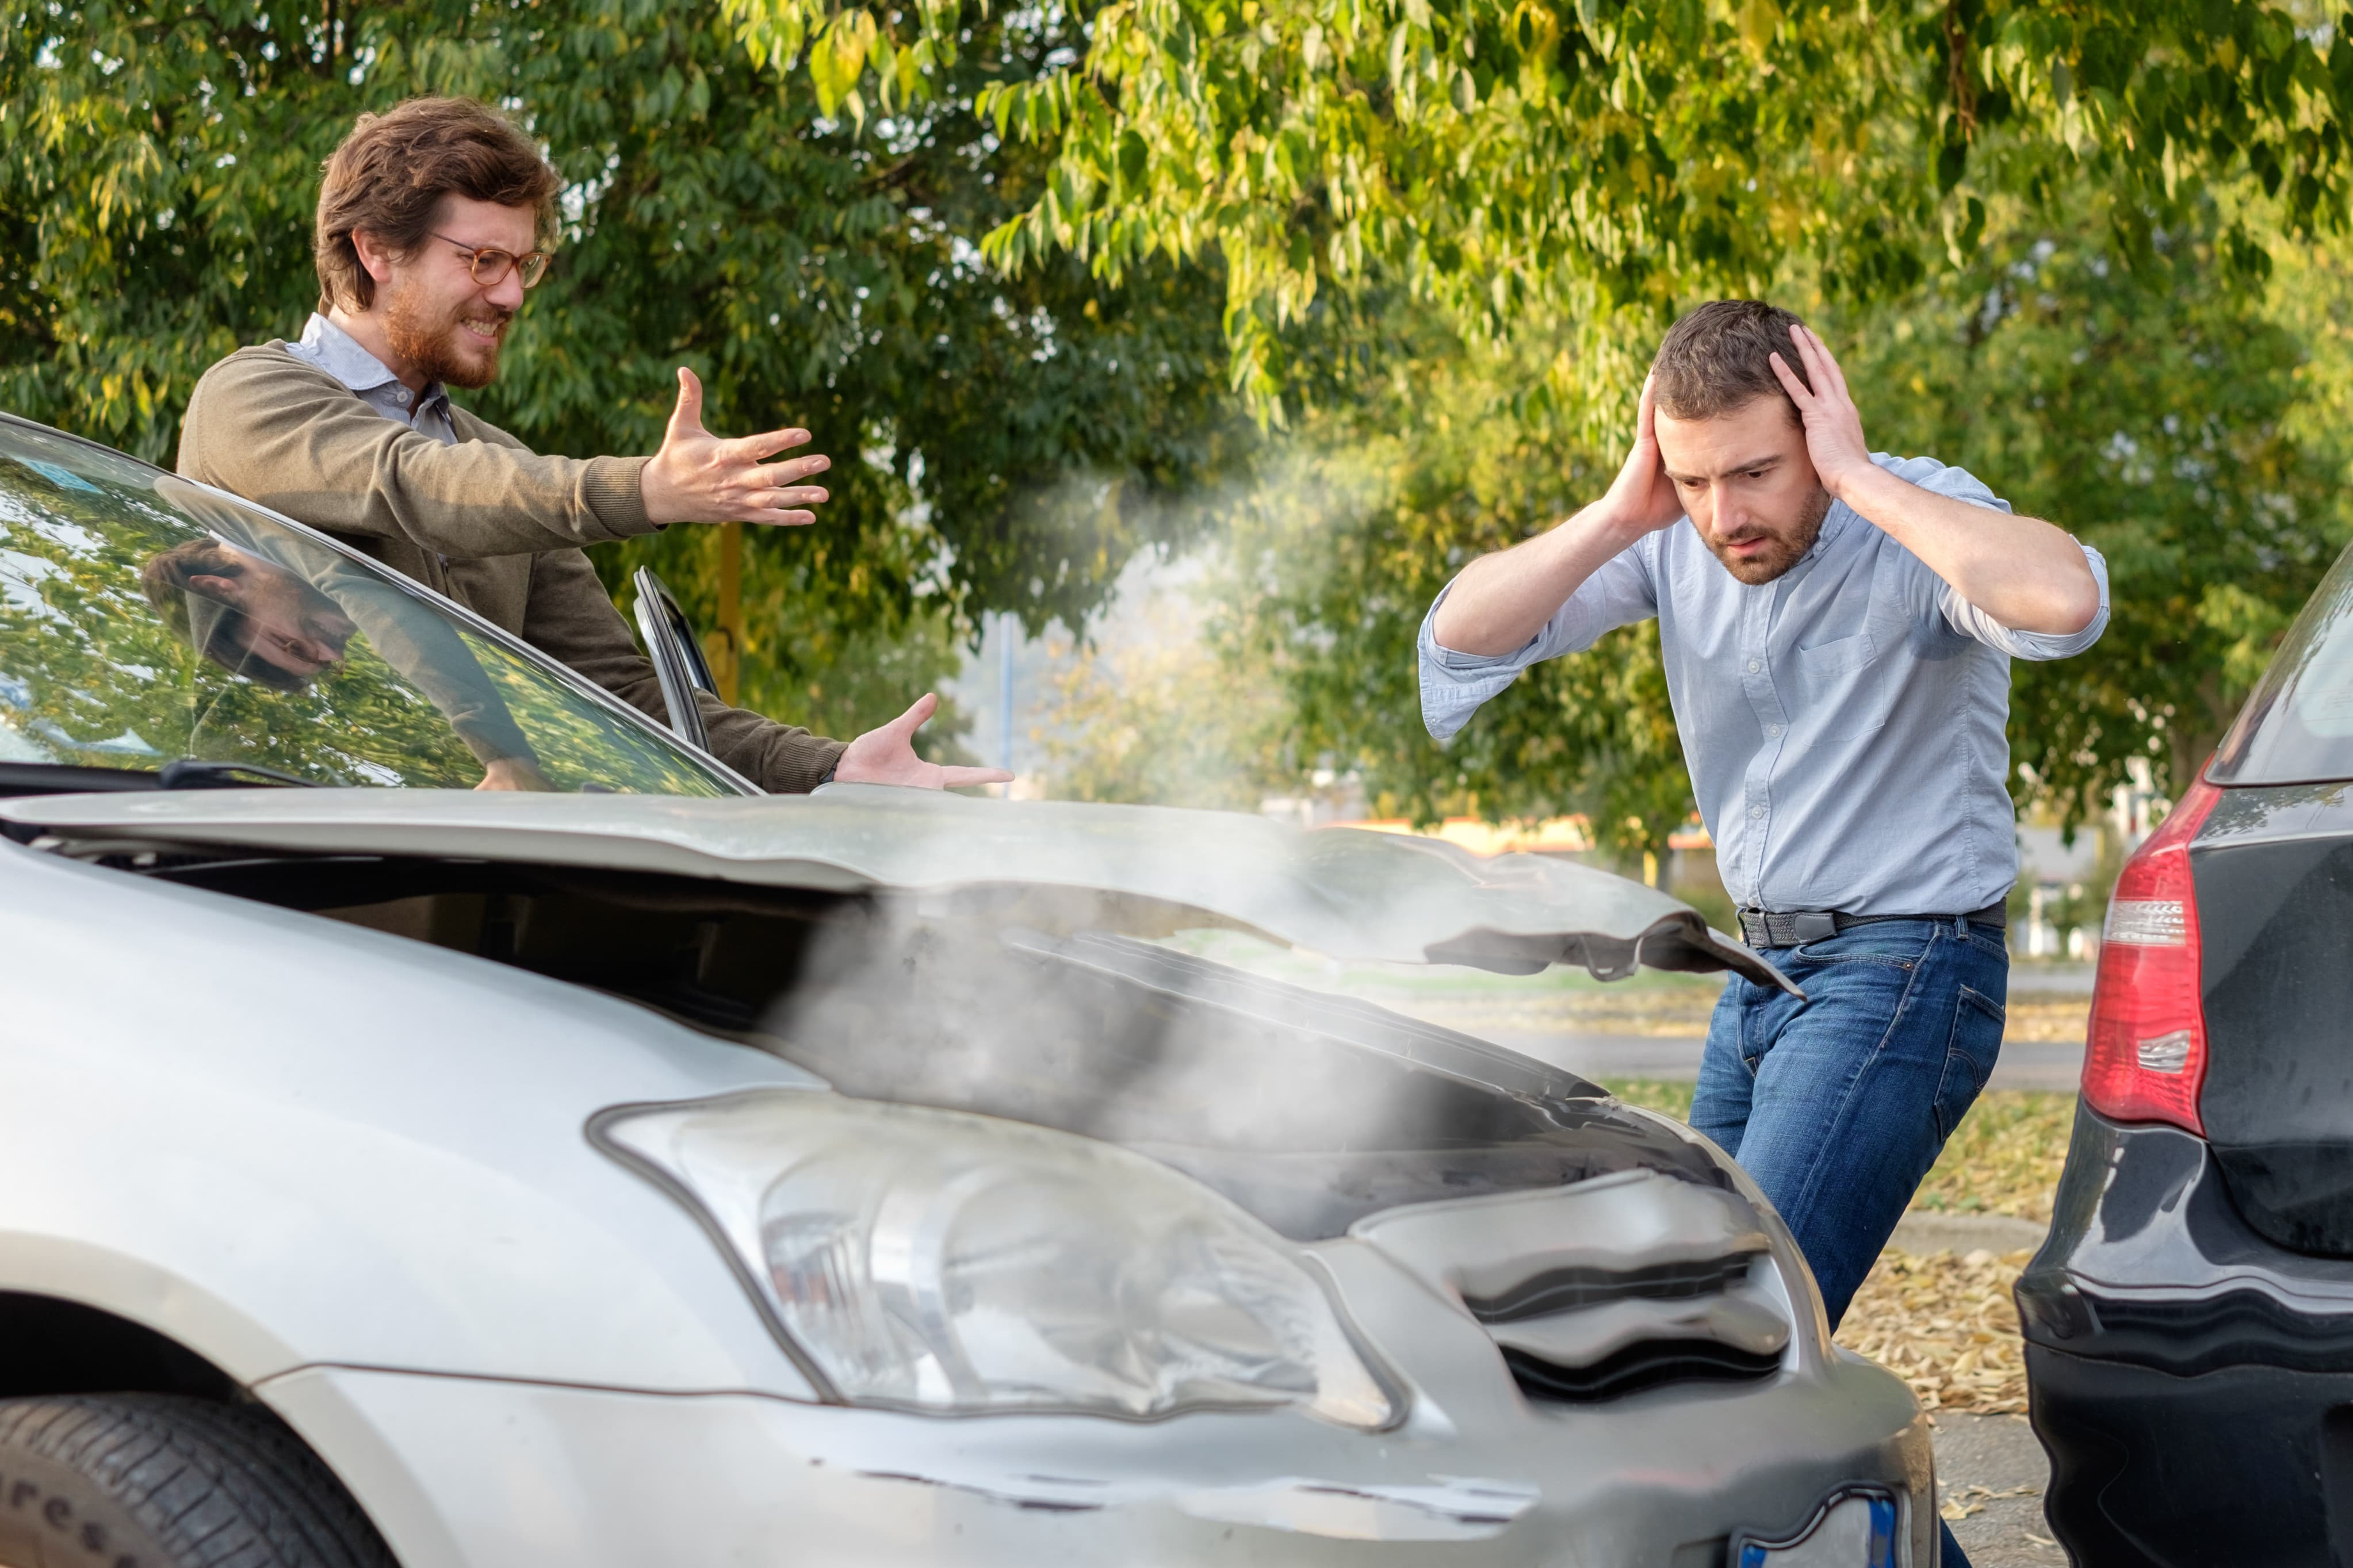 Two men arguing who will pay for car rental after accident.